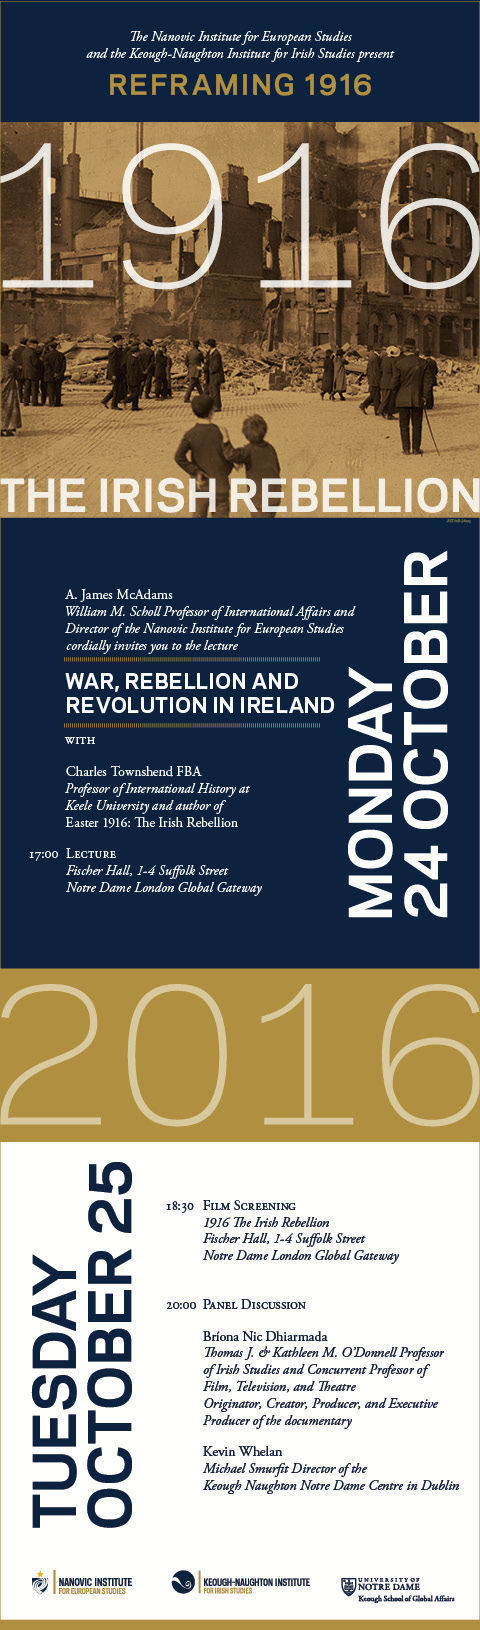 Invitation to Reframing 1916 London